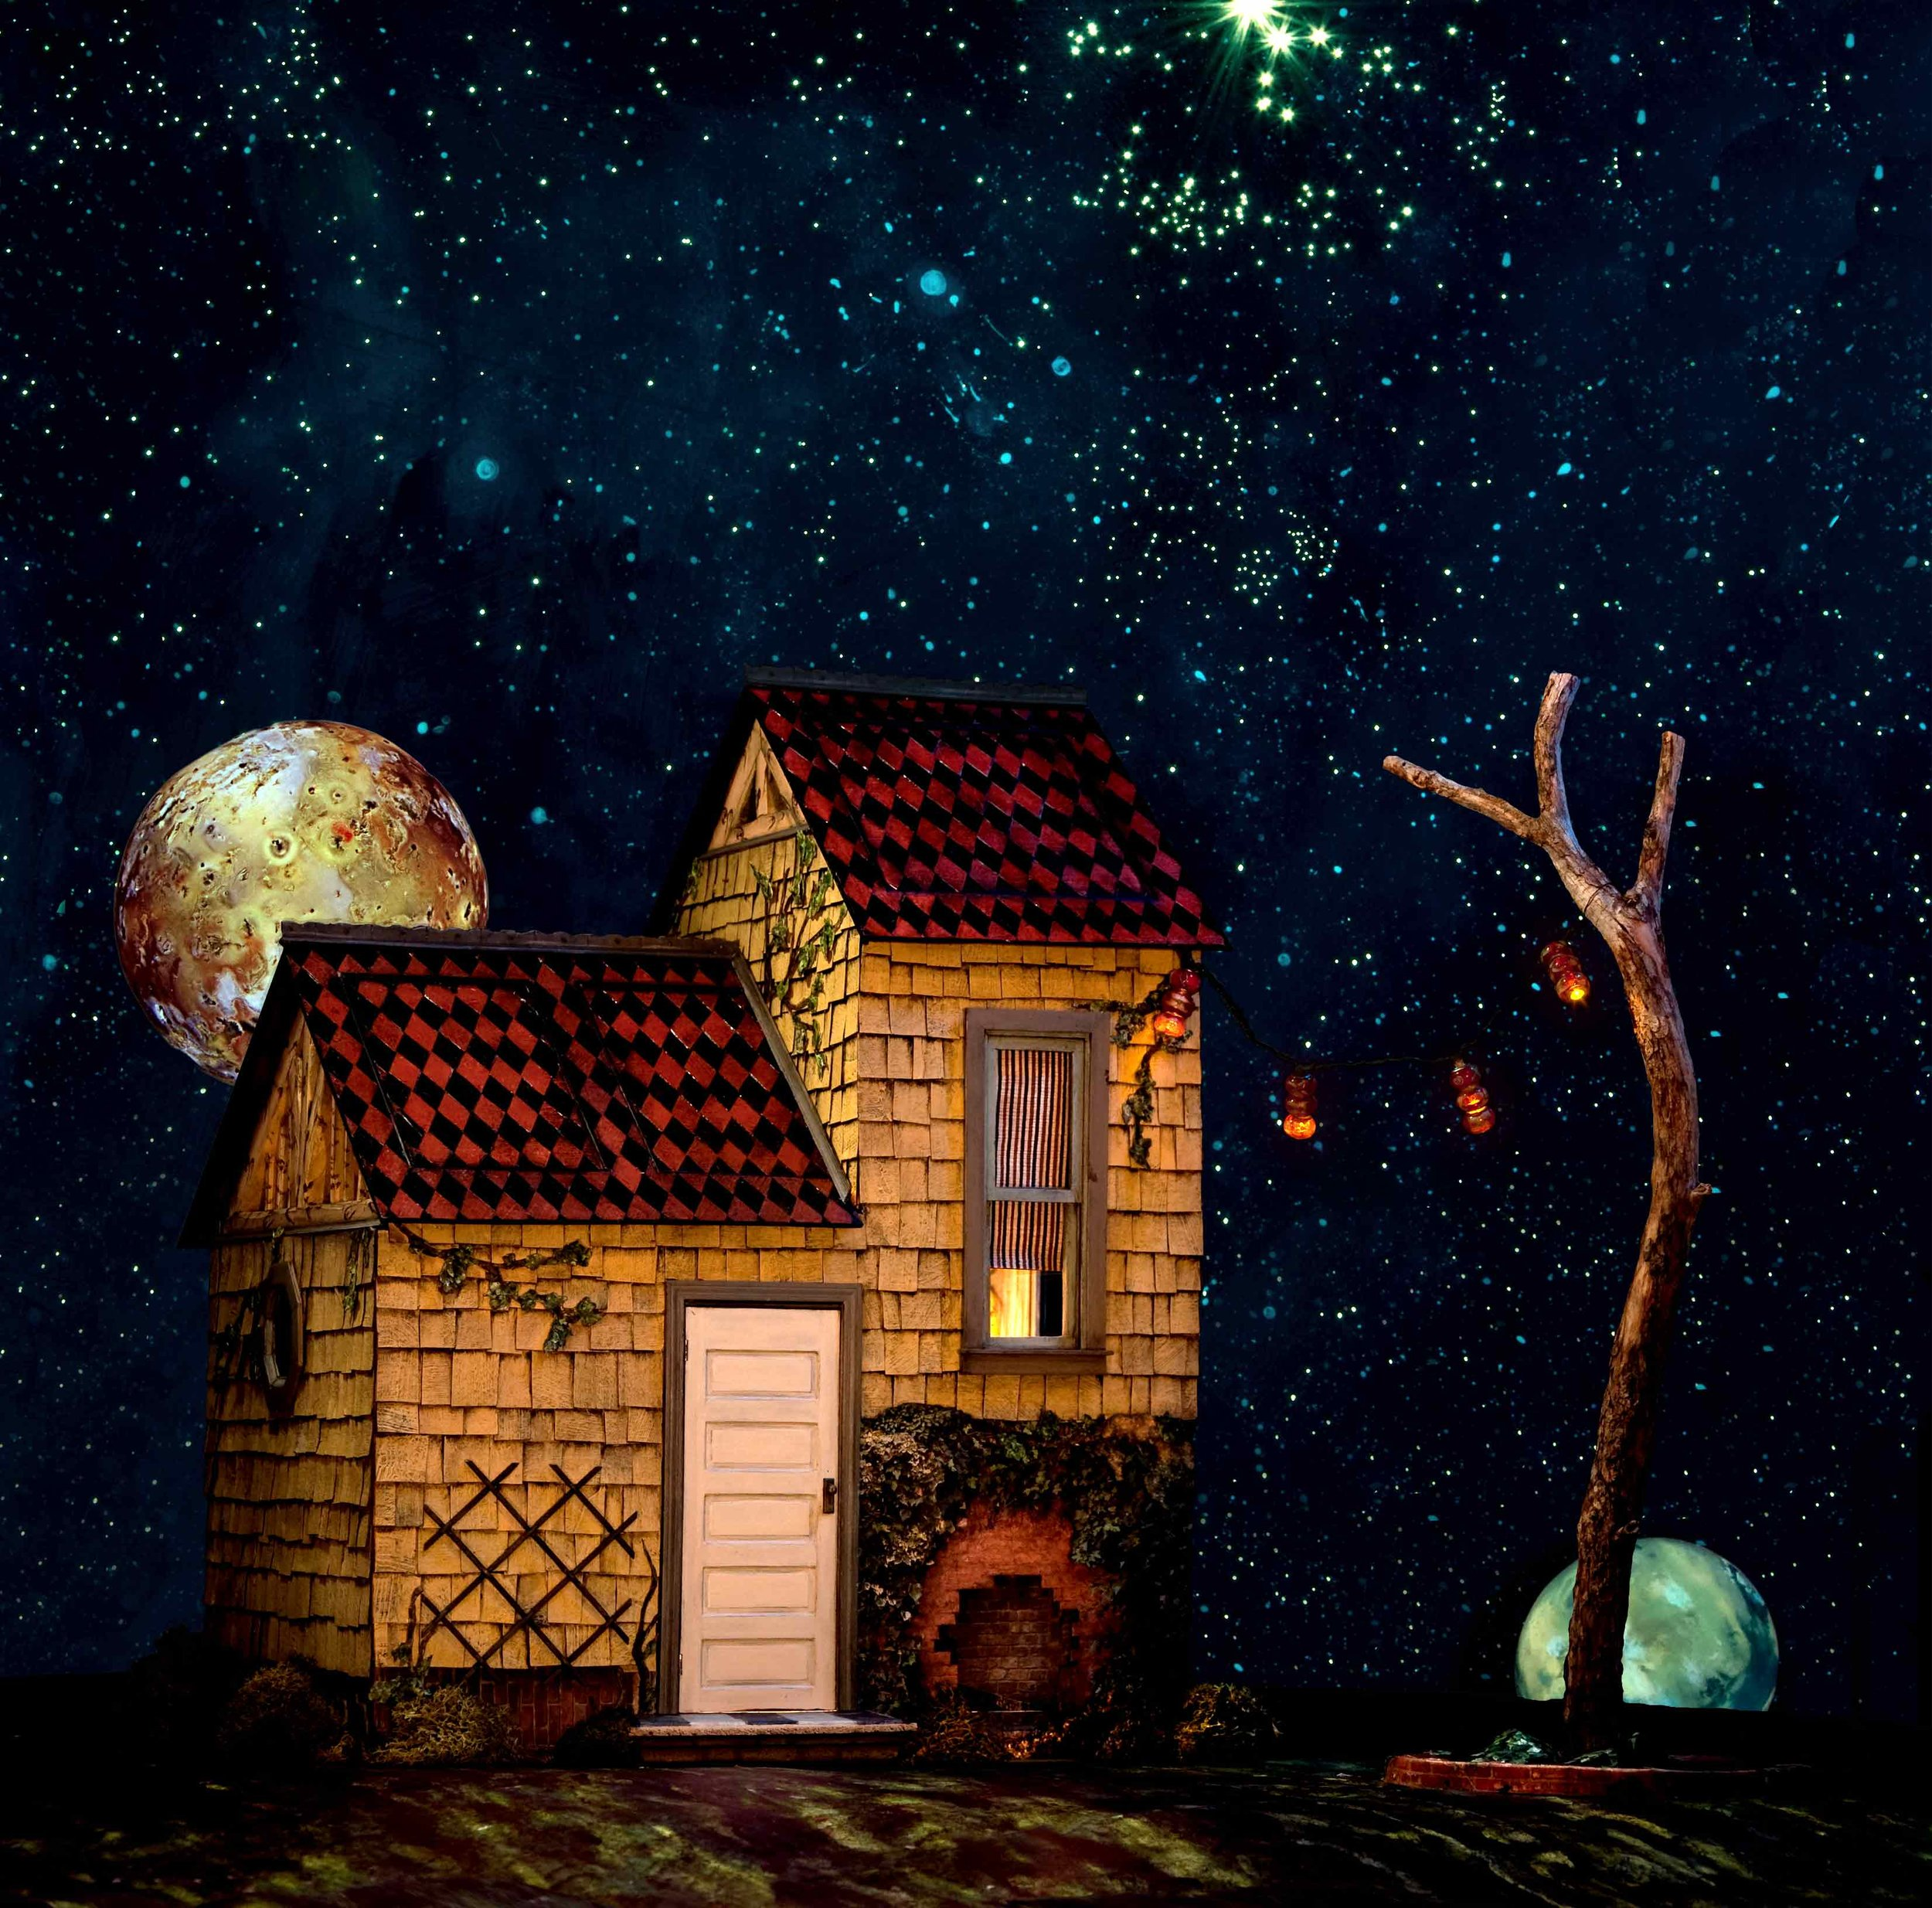 Rabbit House, collaged diorama